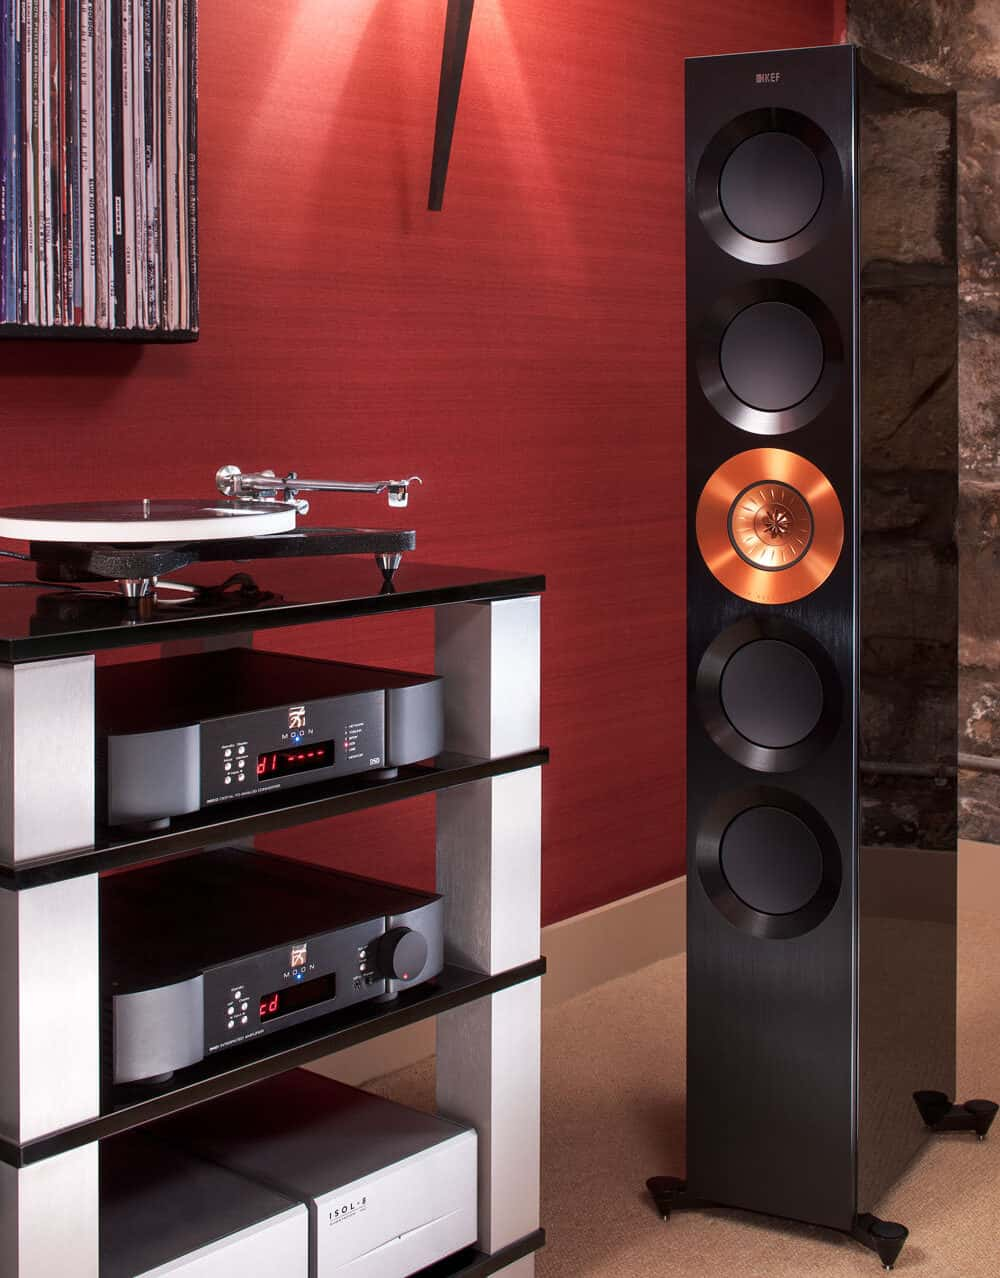 Product photogrpahy at Loud and Clear Hifi in Glasgow. Moon amp, Rega turntable, KEF speakers